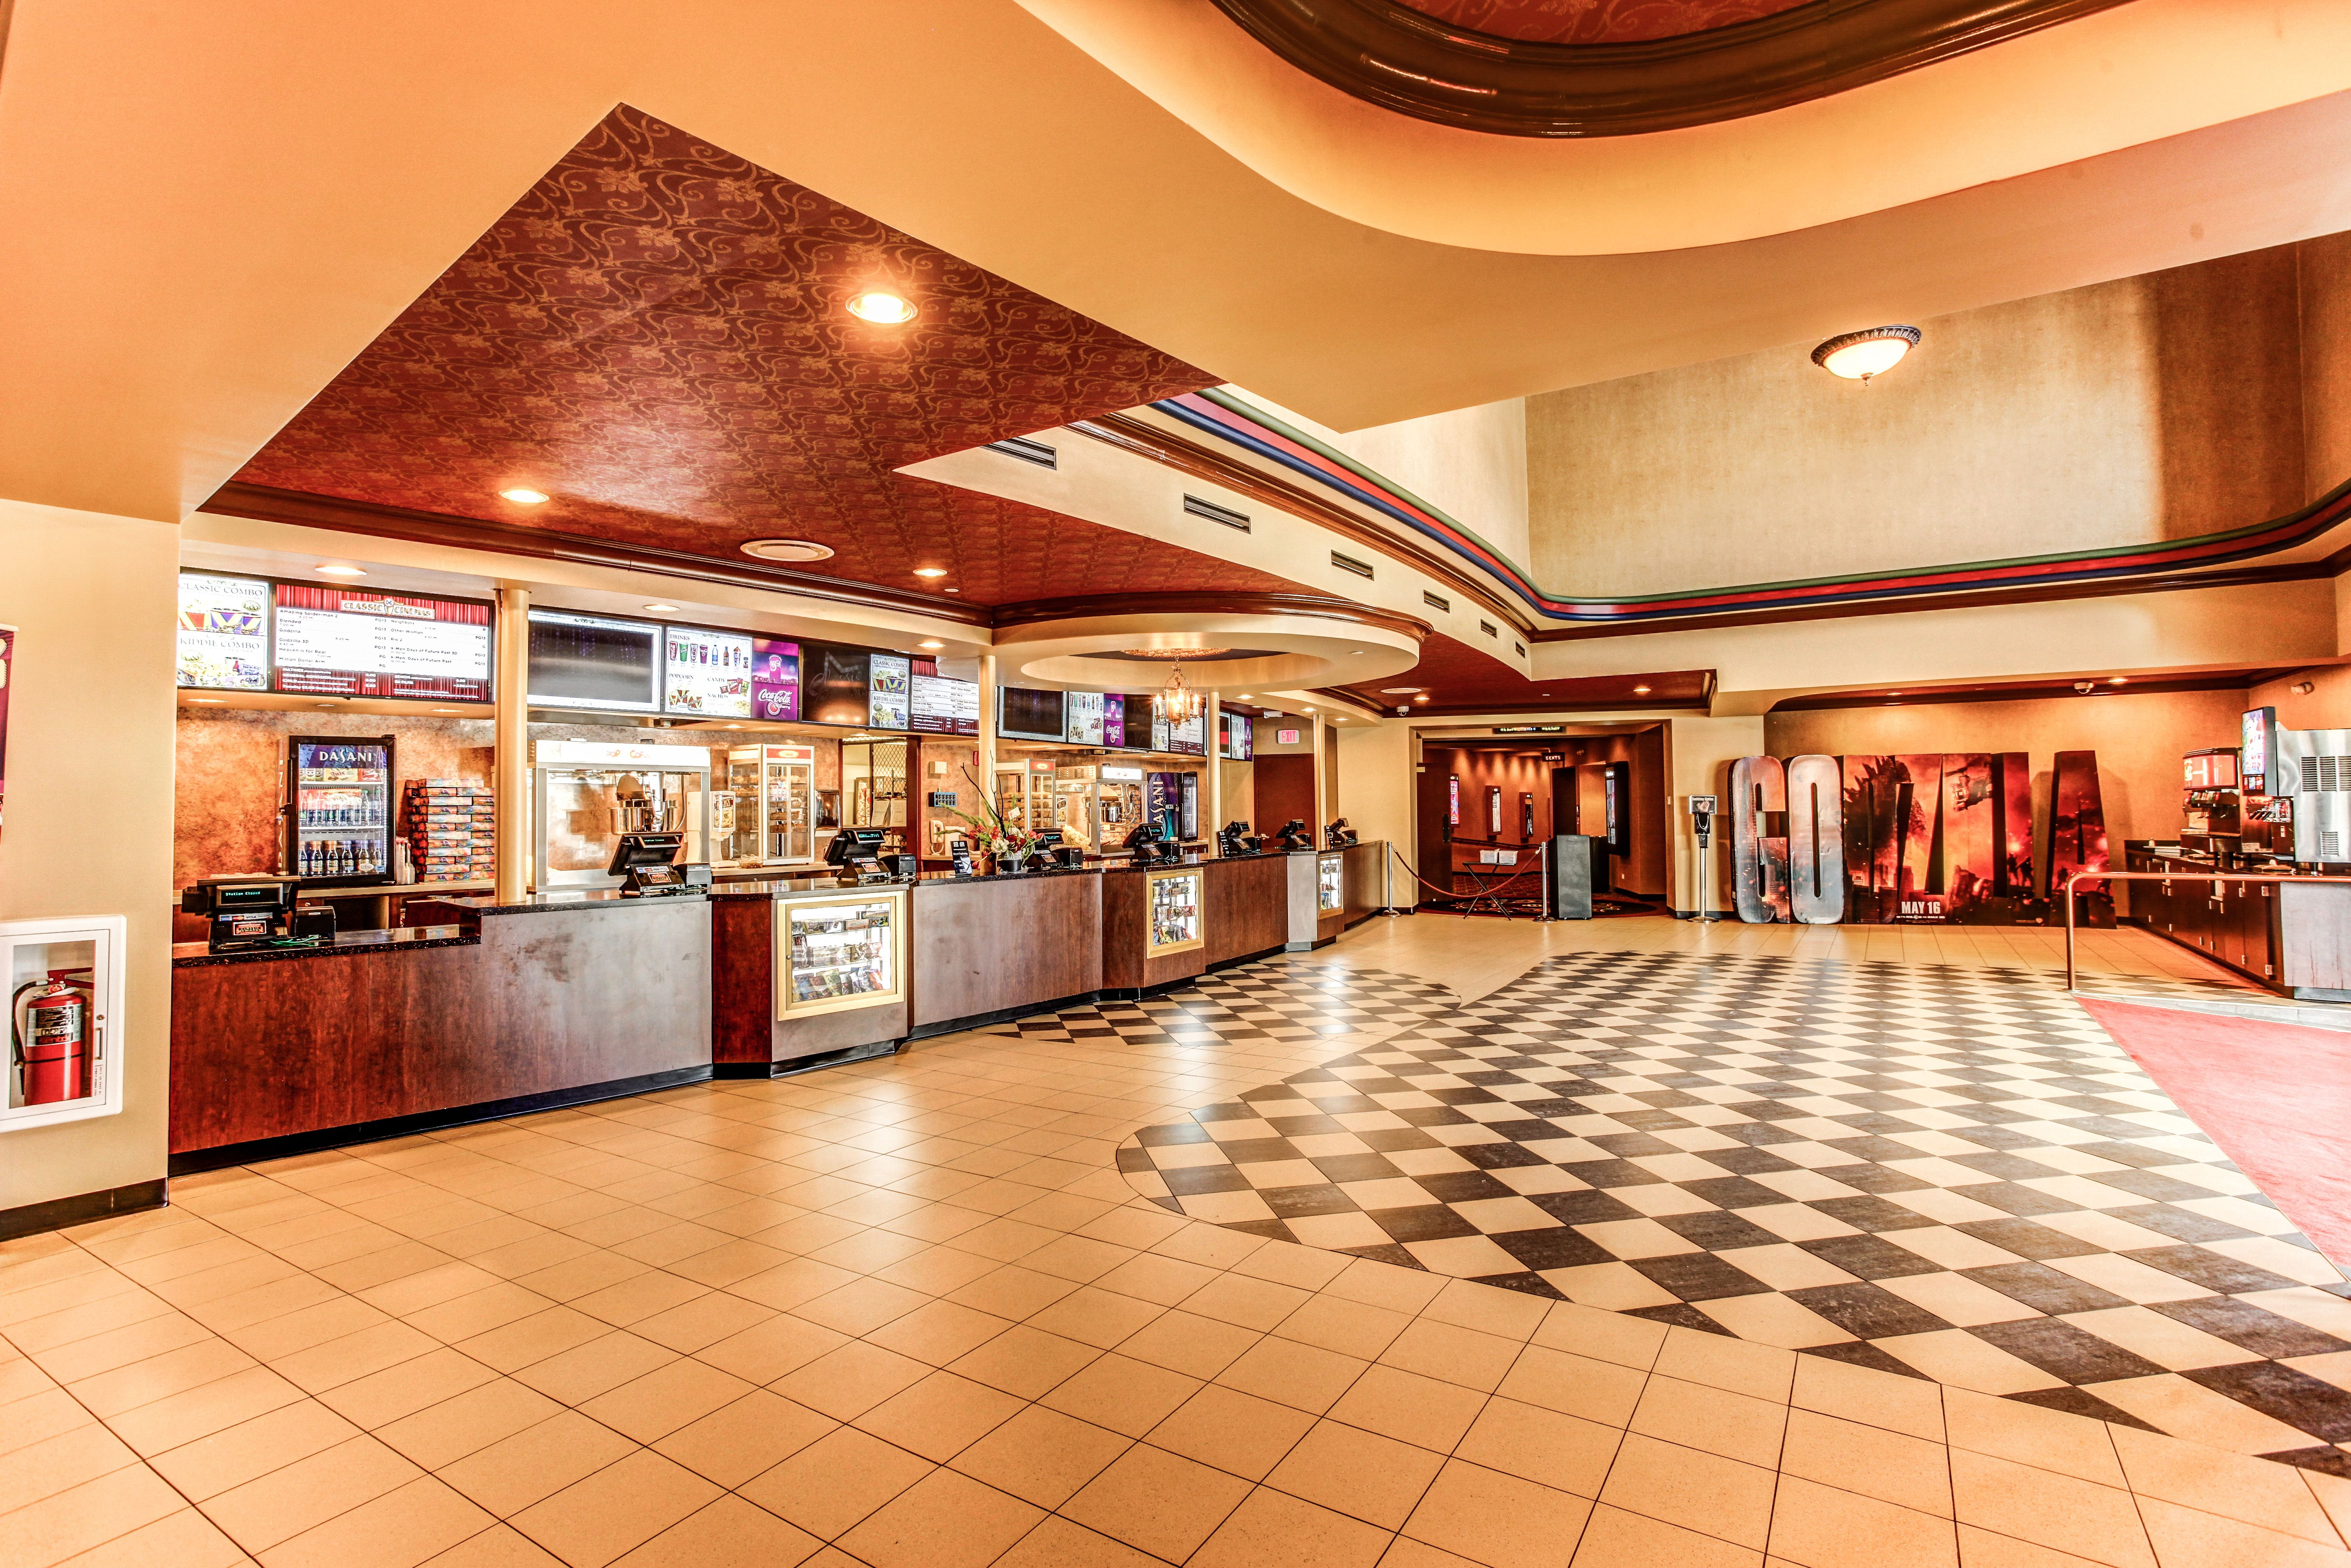 Tivoli Theater Downers Grove It's A Wonderful Life The New Classic Cinemas Woodstock Theatre Concession Stand And